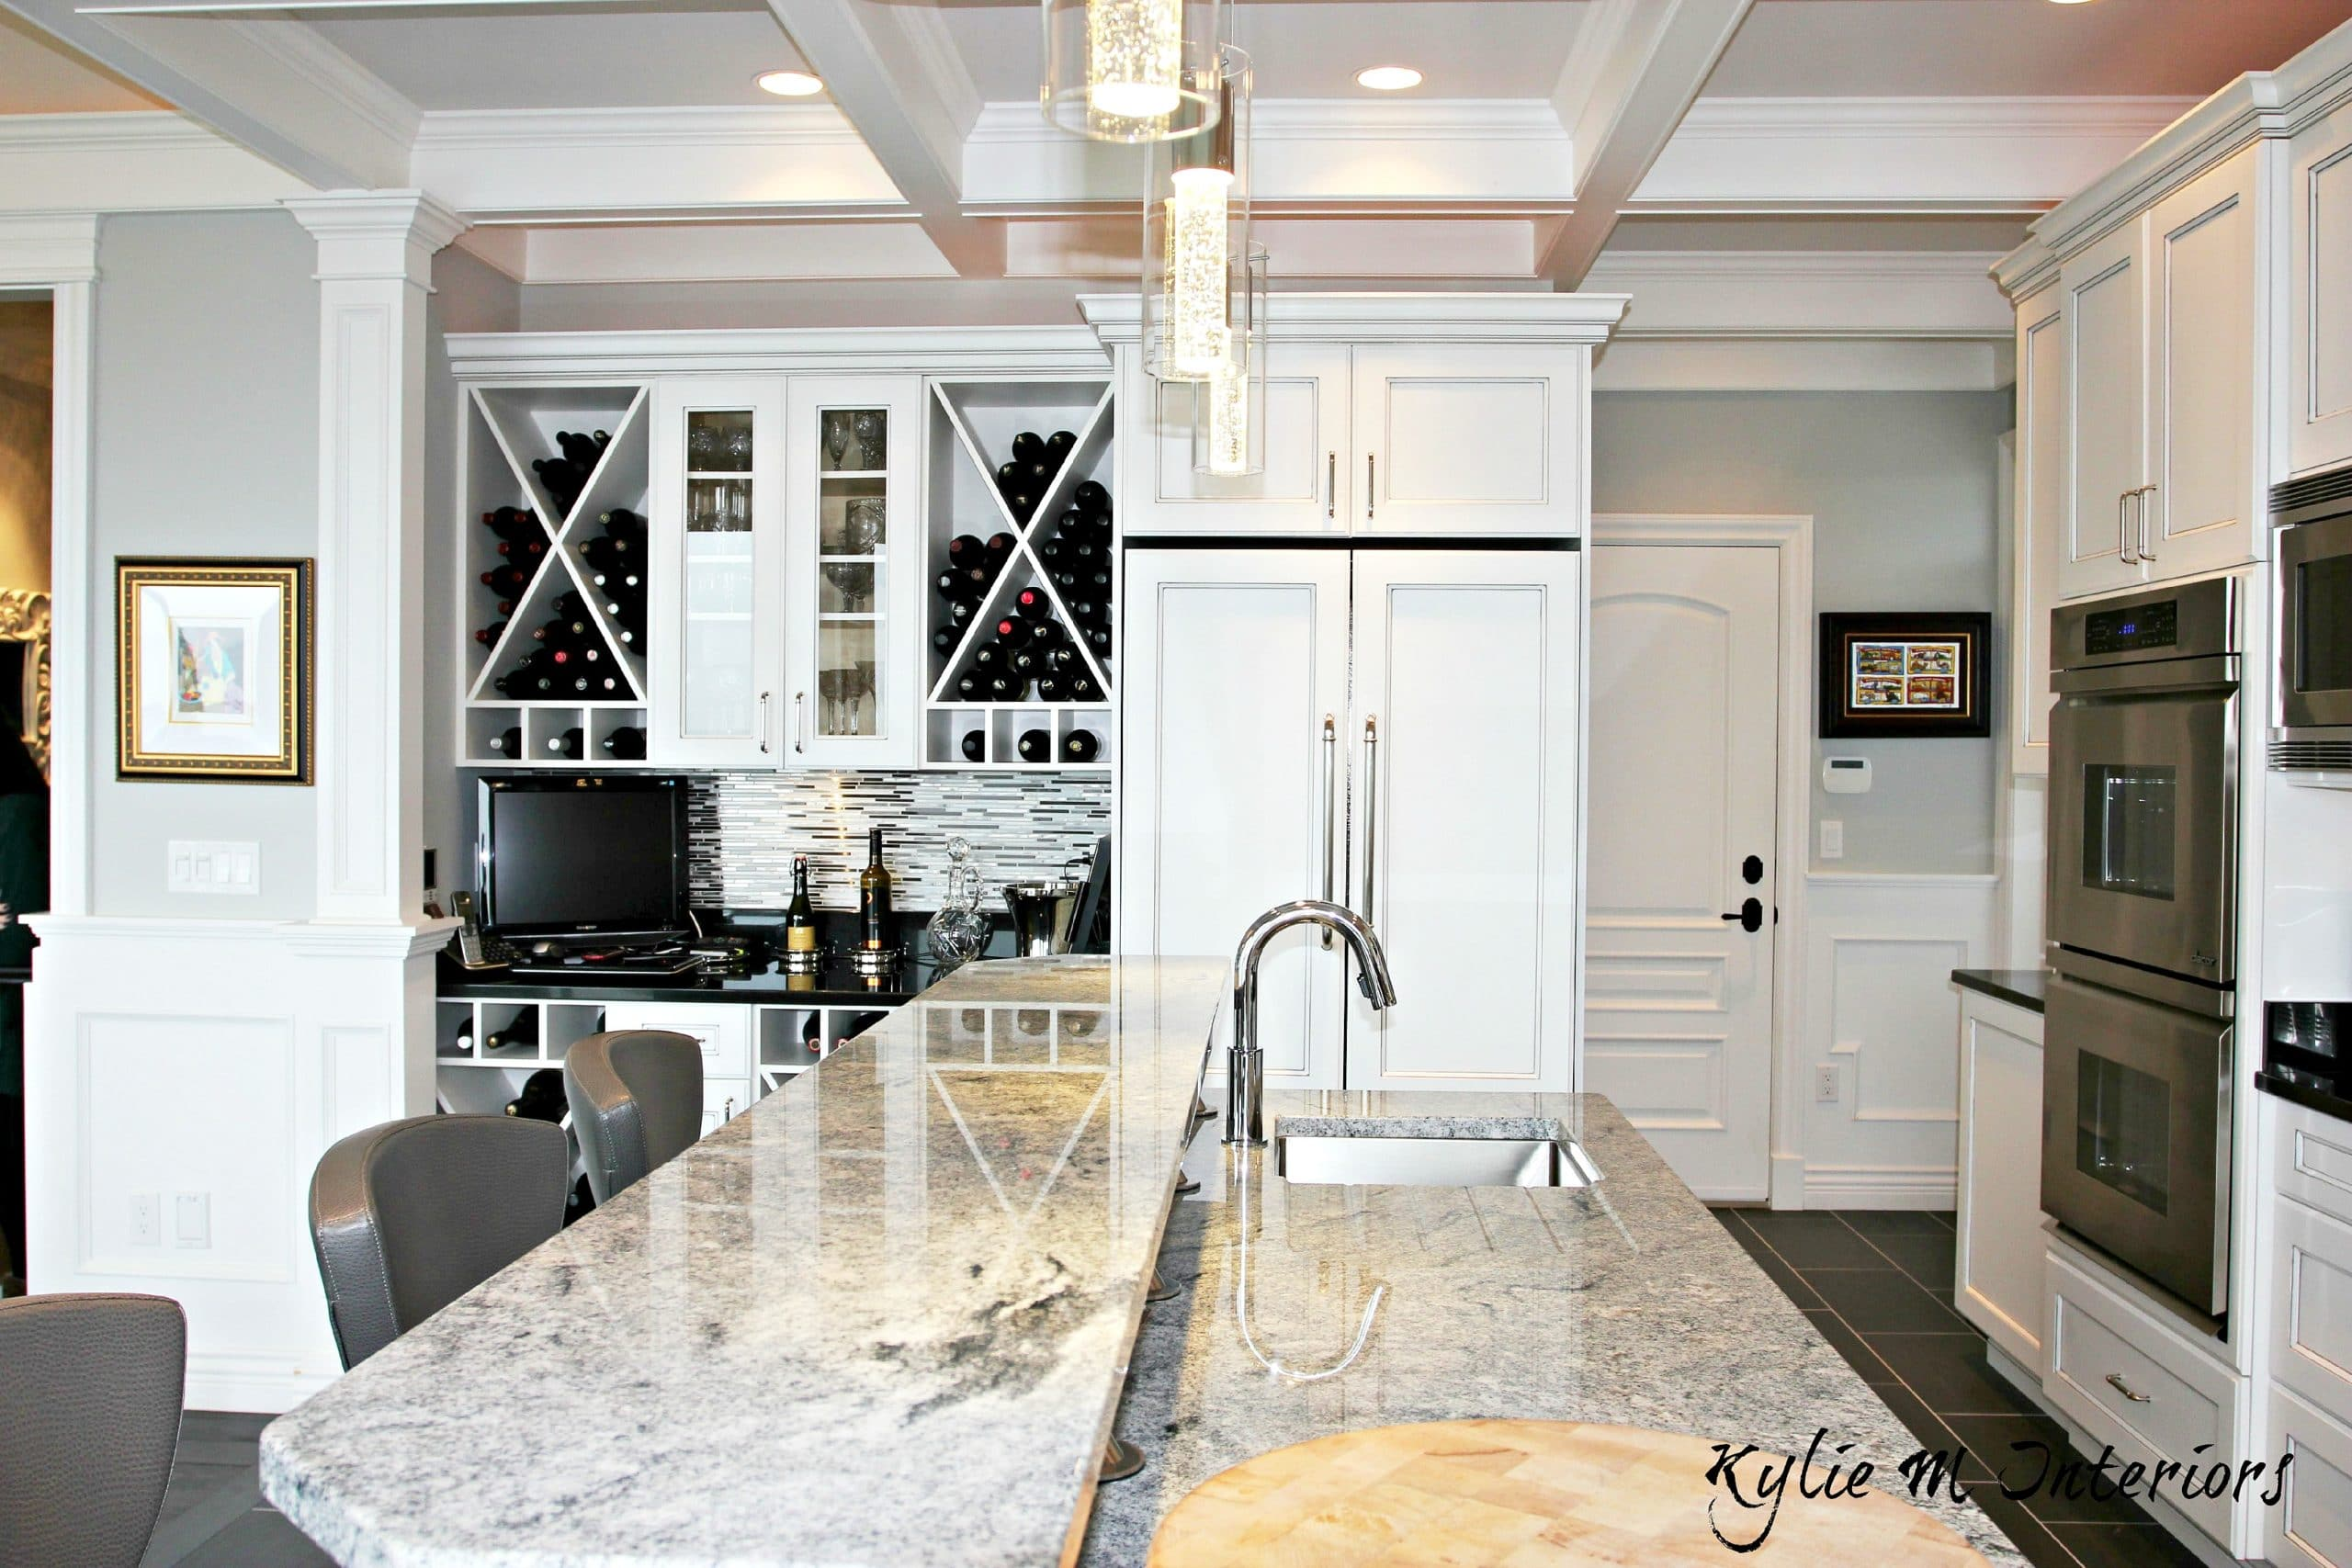 Marble Island With Raised Bar Top, Wine Bar Station With White Glazed  Cabinets, Coffered Ceilings And Benjamin Moore Stonington Gray Walls.